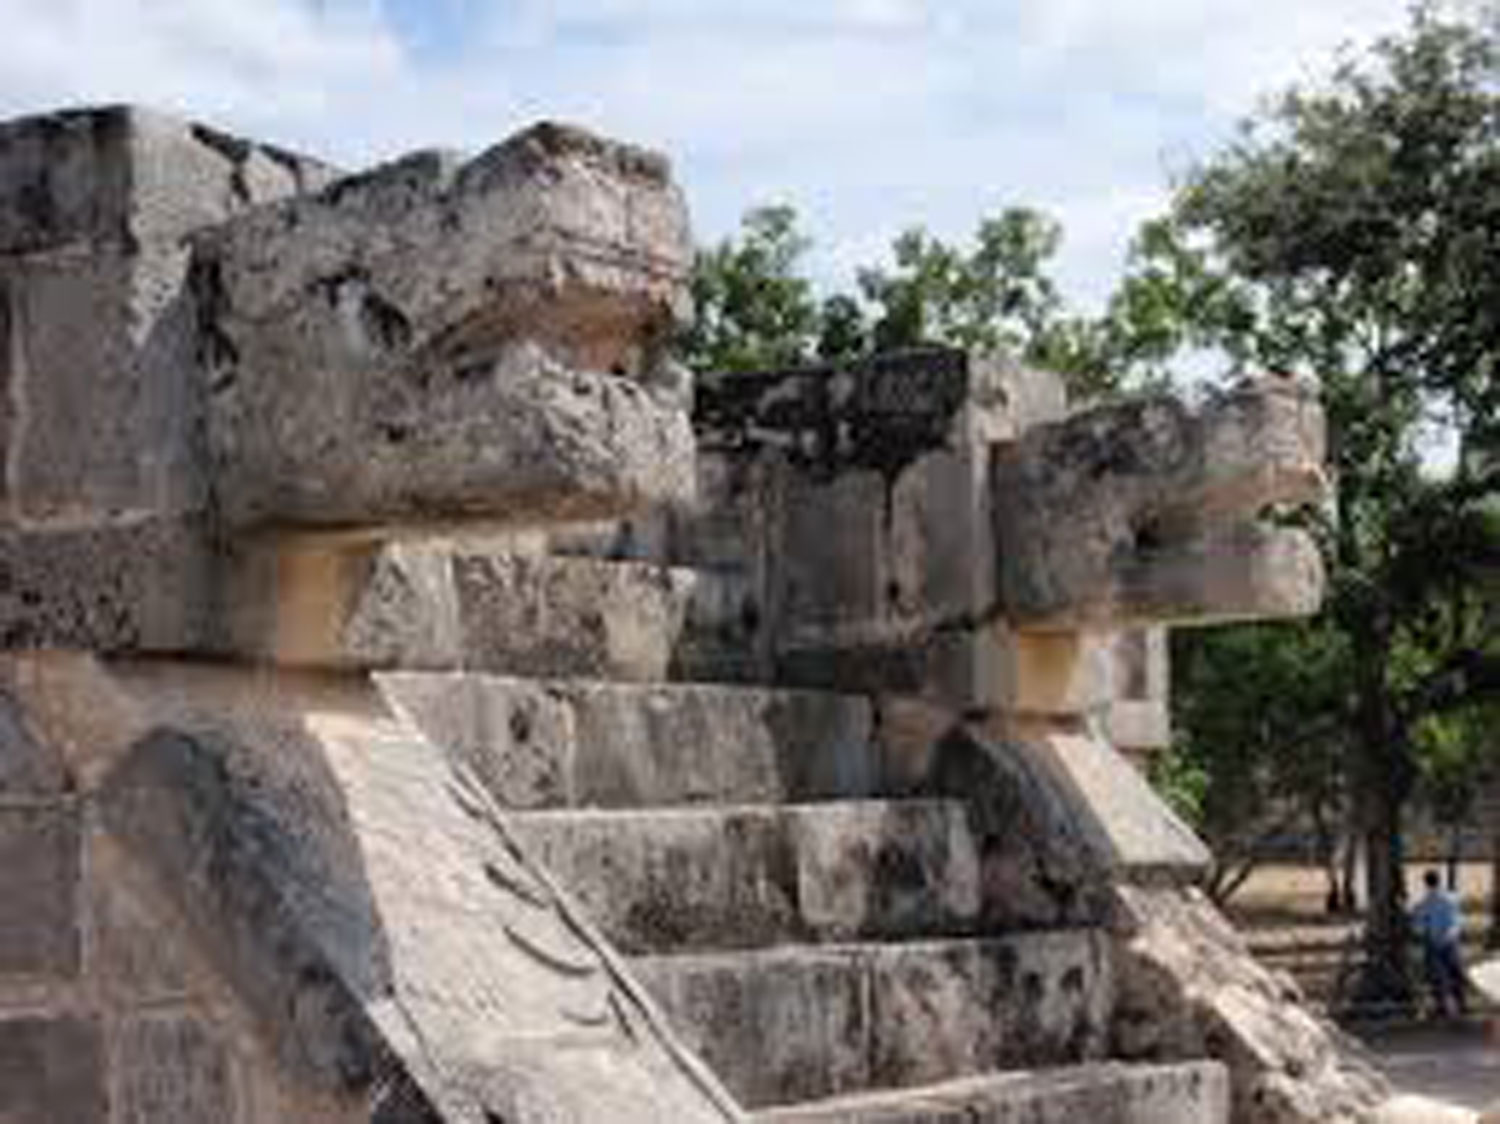 Chichén Itzá, the Platform of the Eagles and Jaguars.